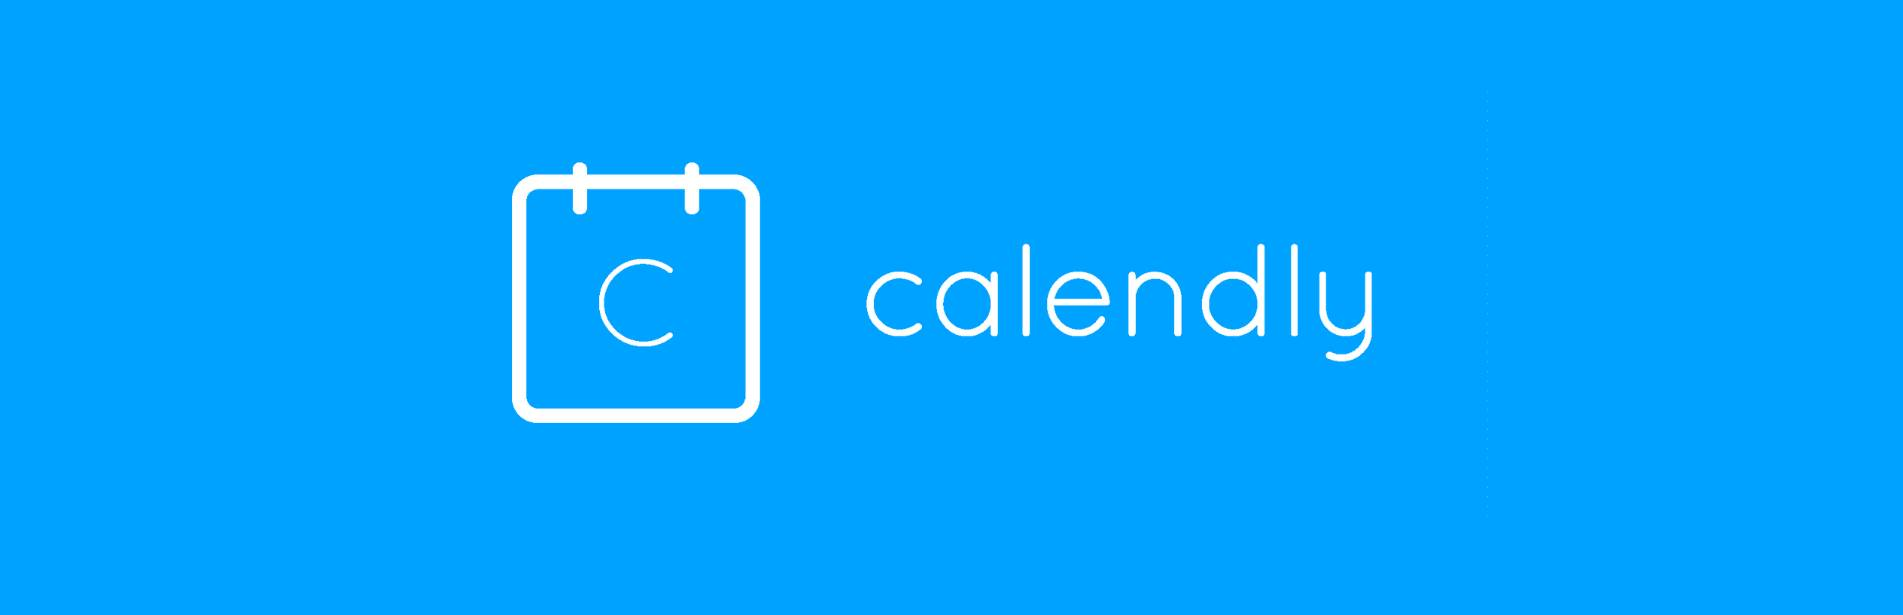 Dental Design Introduces Calendly